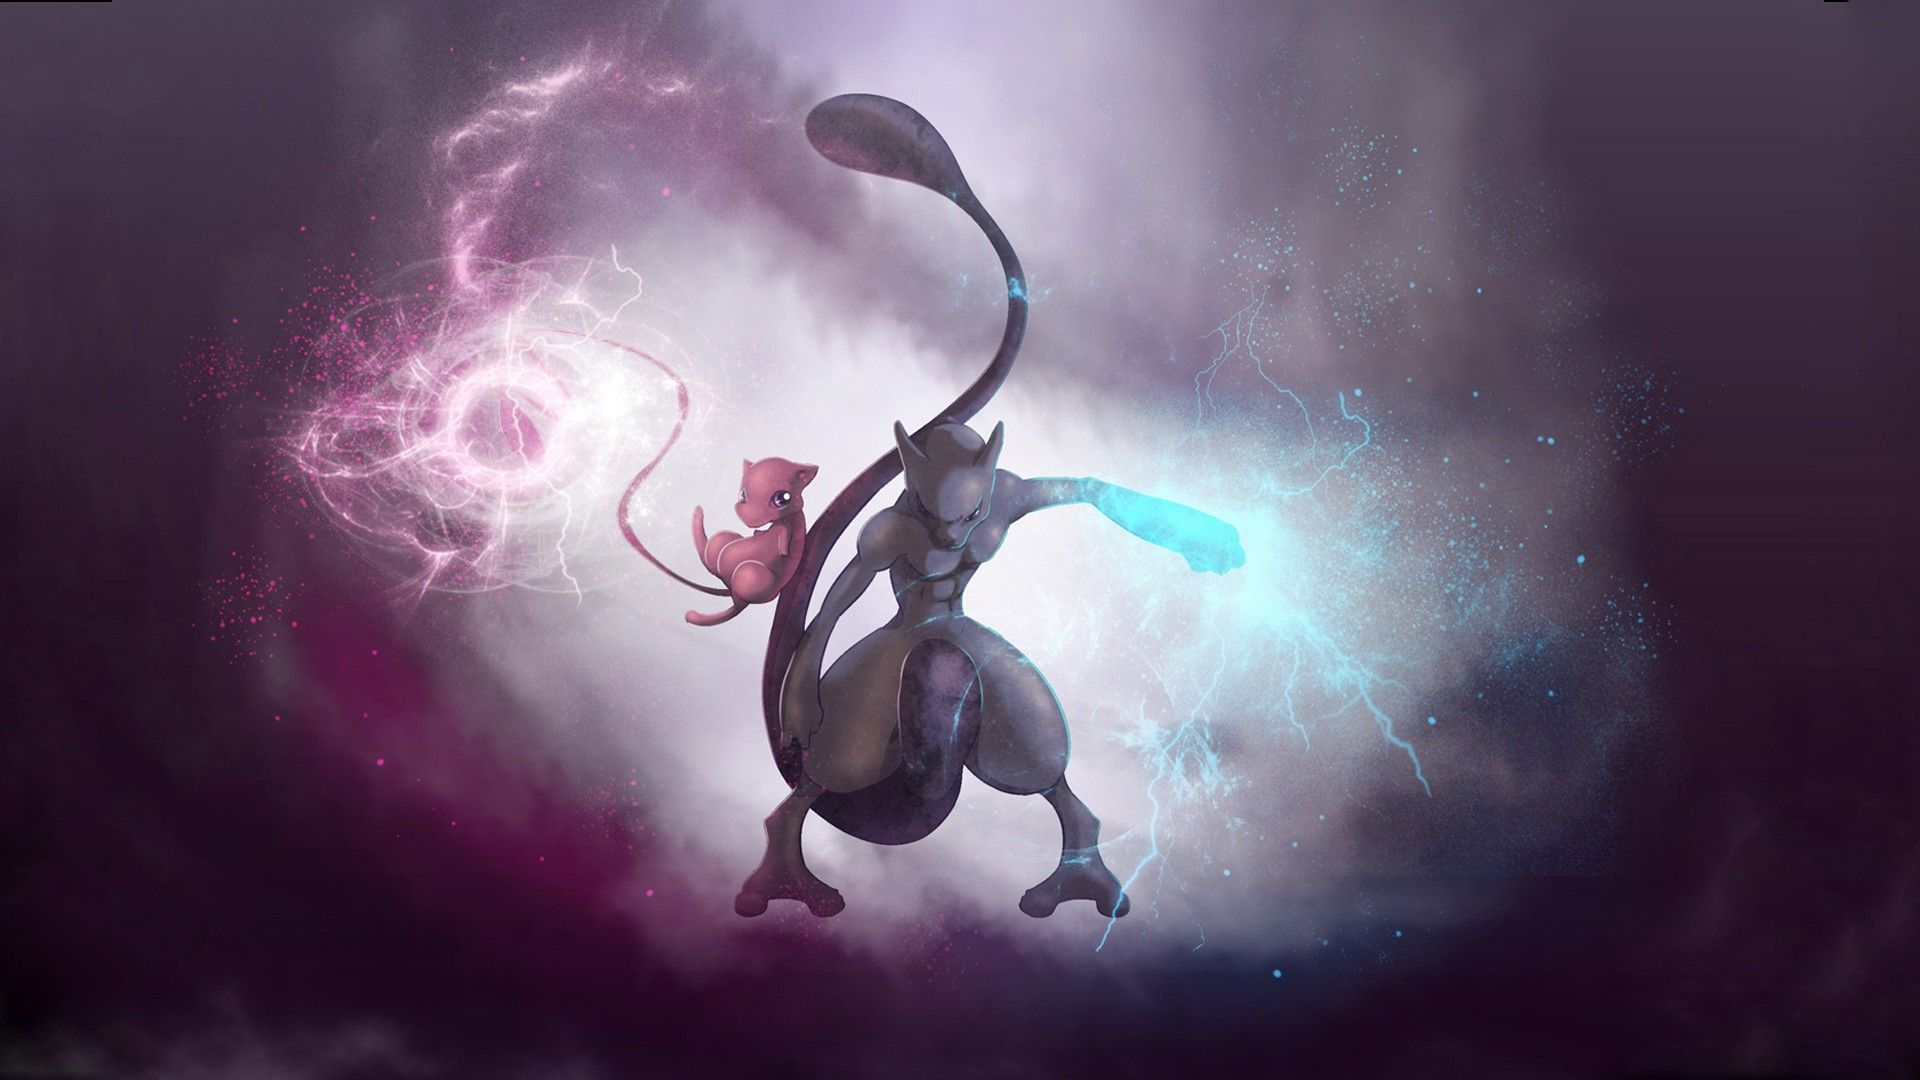 Mew And Mewtwo Wallpapers Top Free Mew And Mewtwo